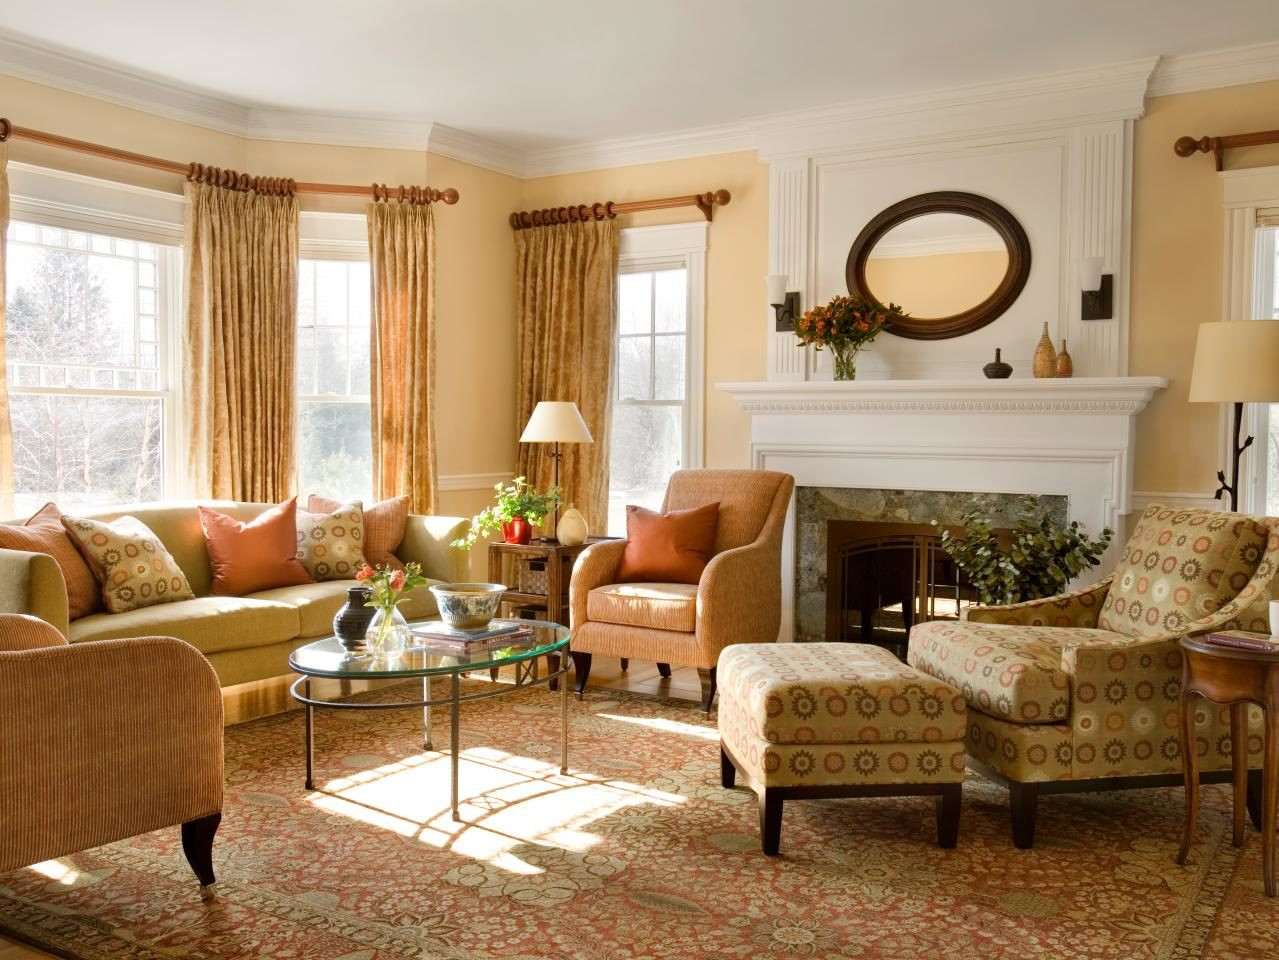 Best ideas about Furniture Ideas For Living Room . Save or Pin How To Place Furniture A Rug Interior Design Now.